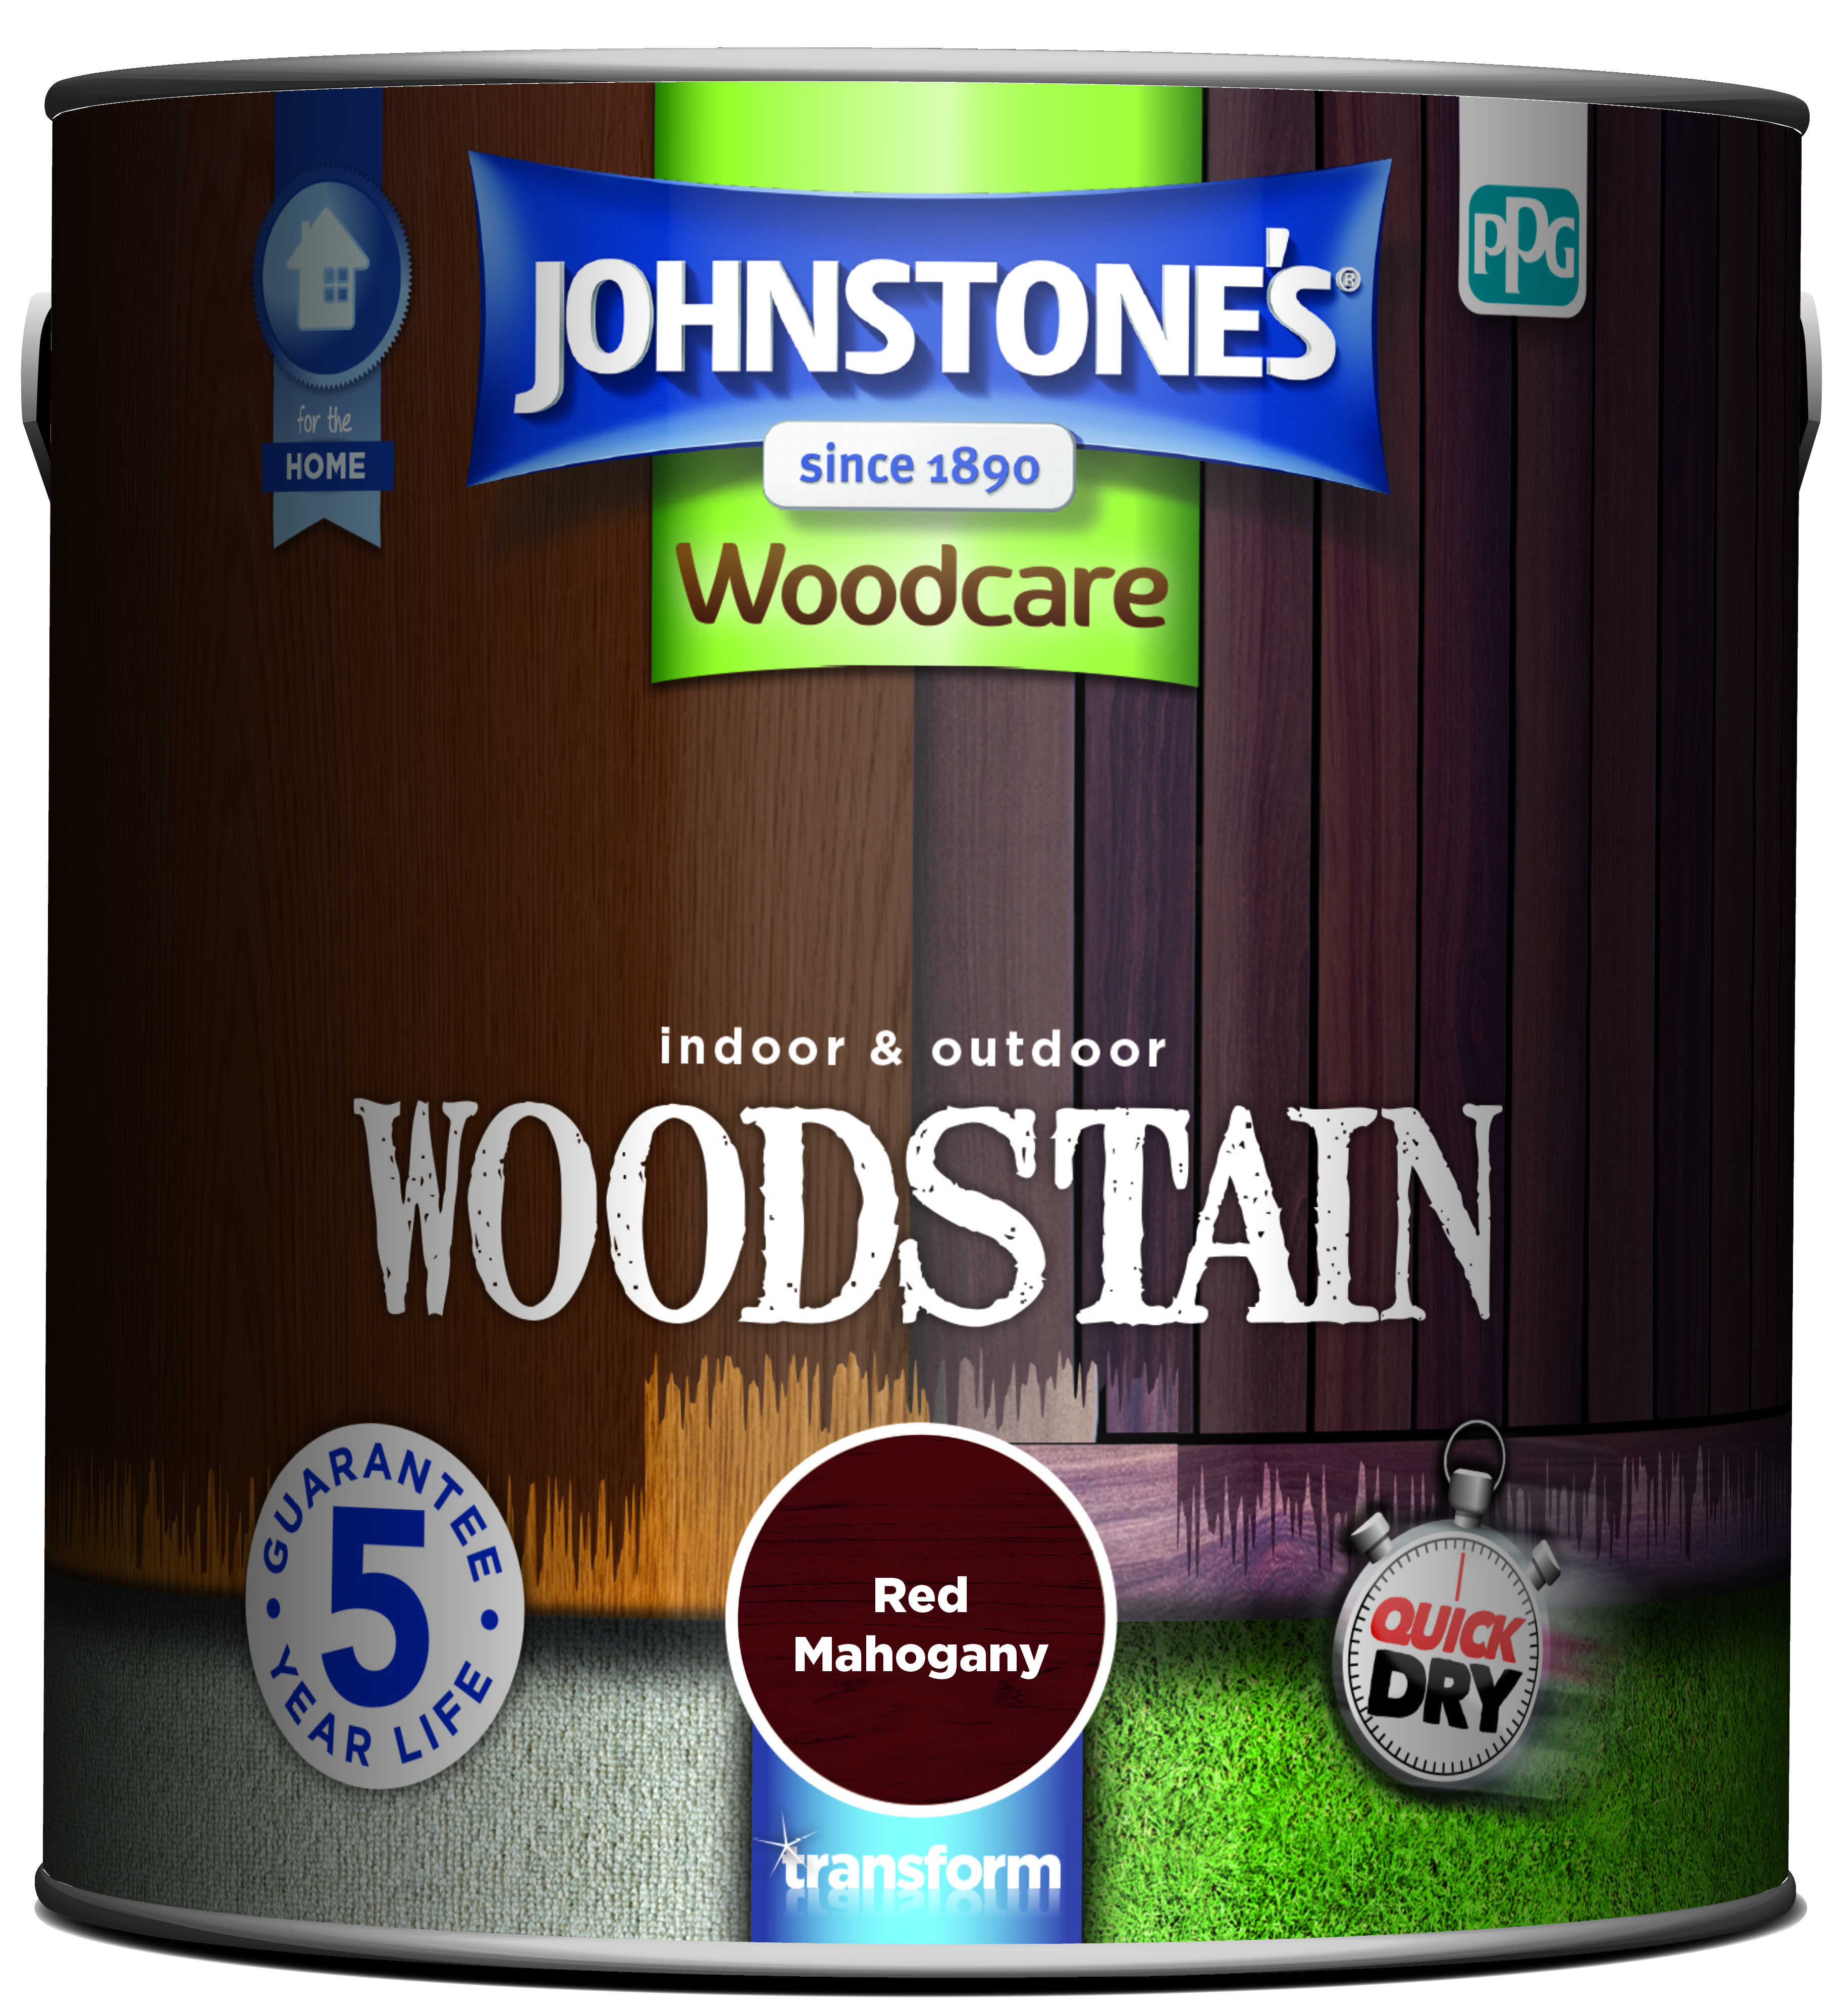 2.5ltr - Johnstone's Woodcare Woostain Mahogany